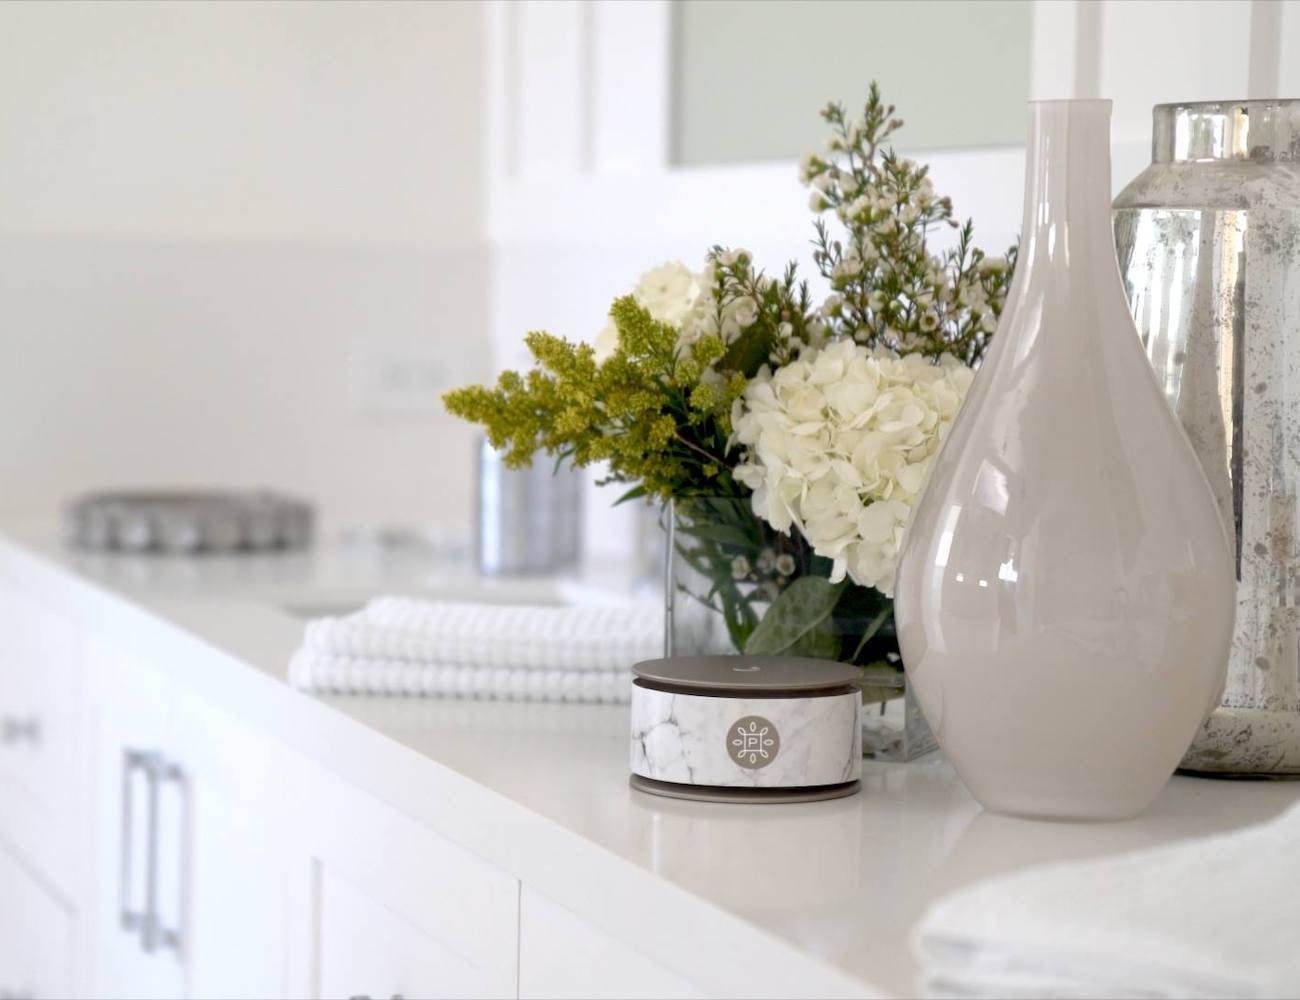 PURE Portable Aromatherapy Air Purifier